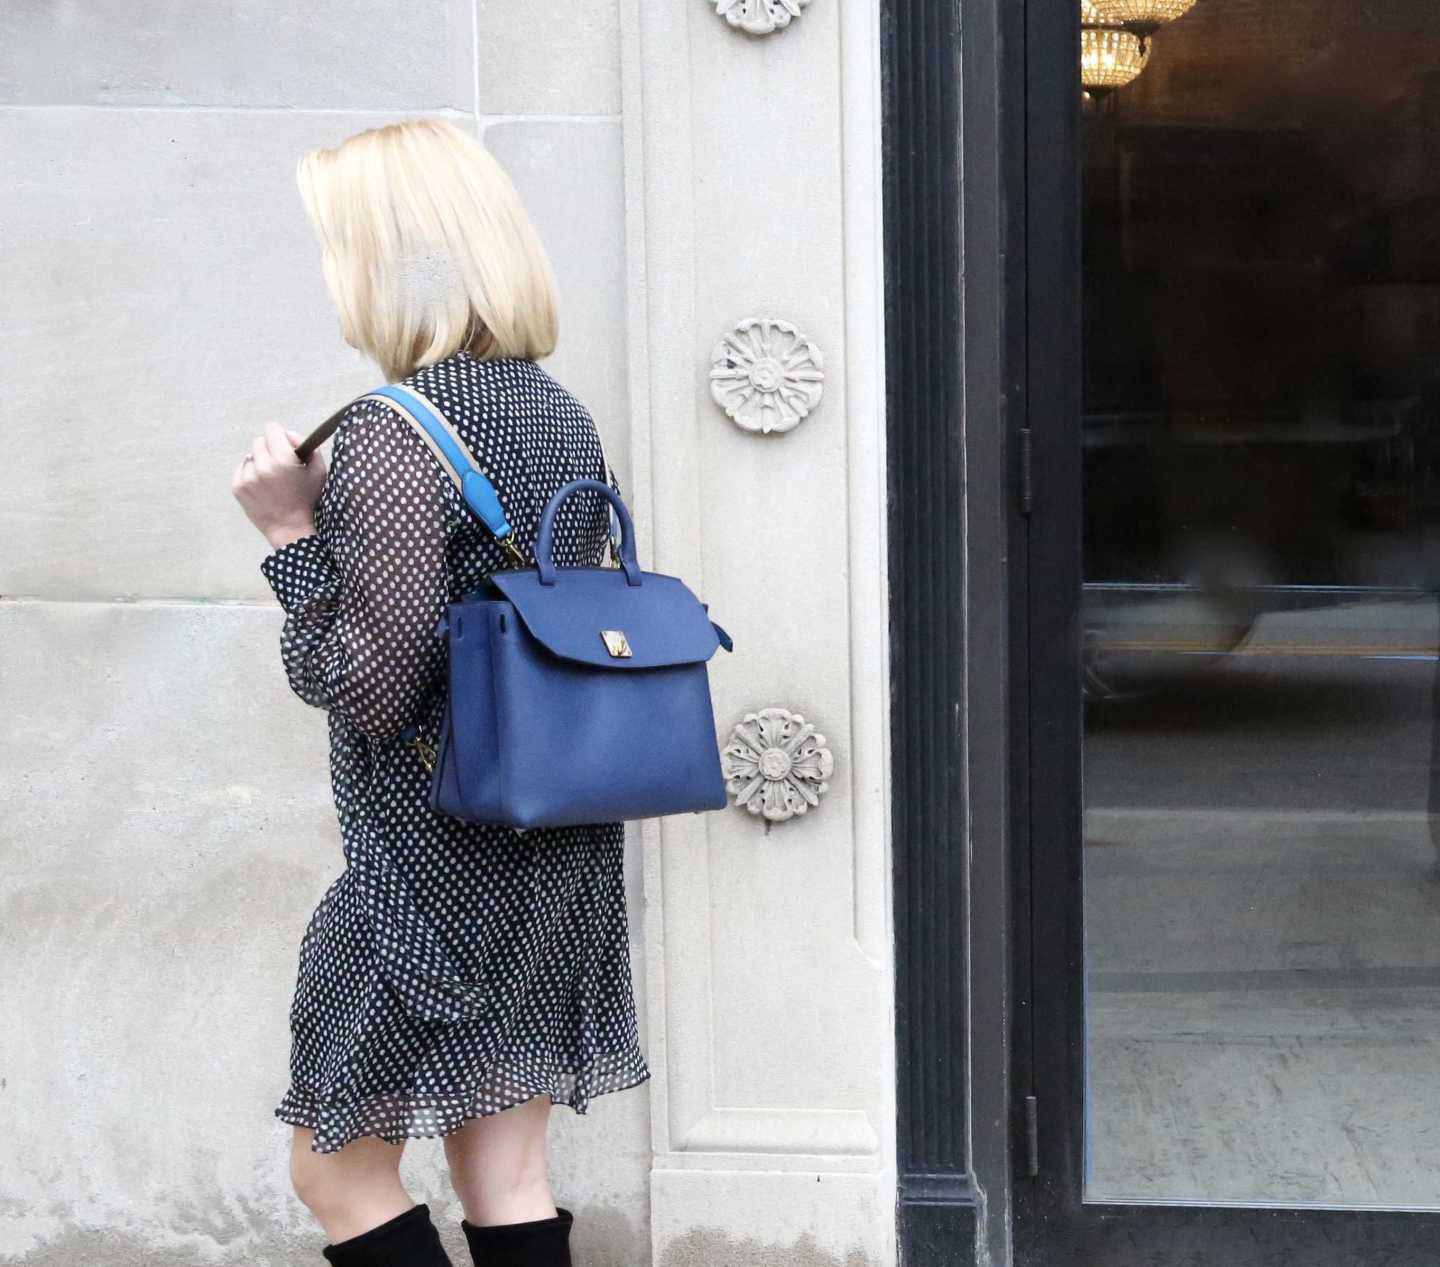 MCM Backpack Review